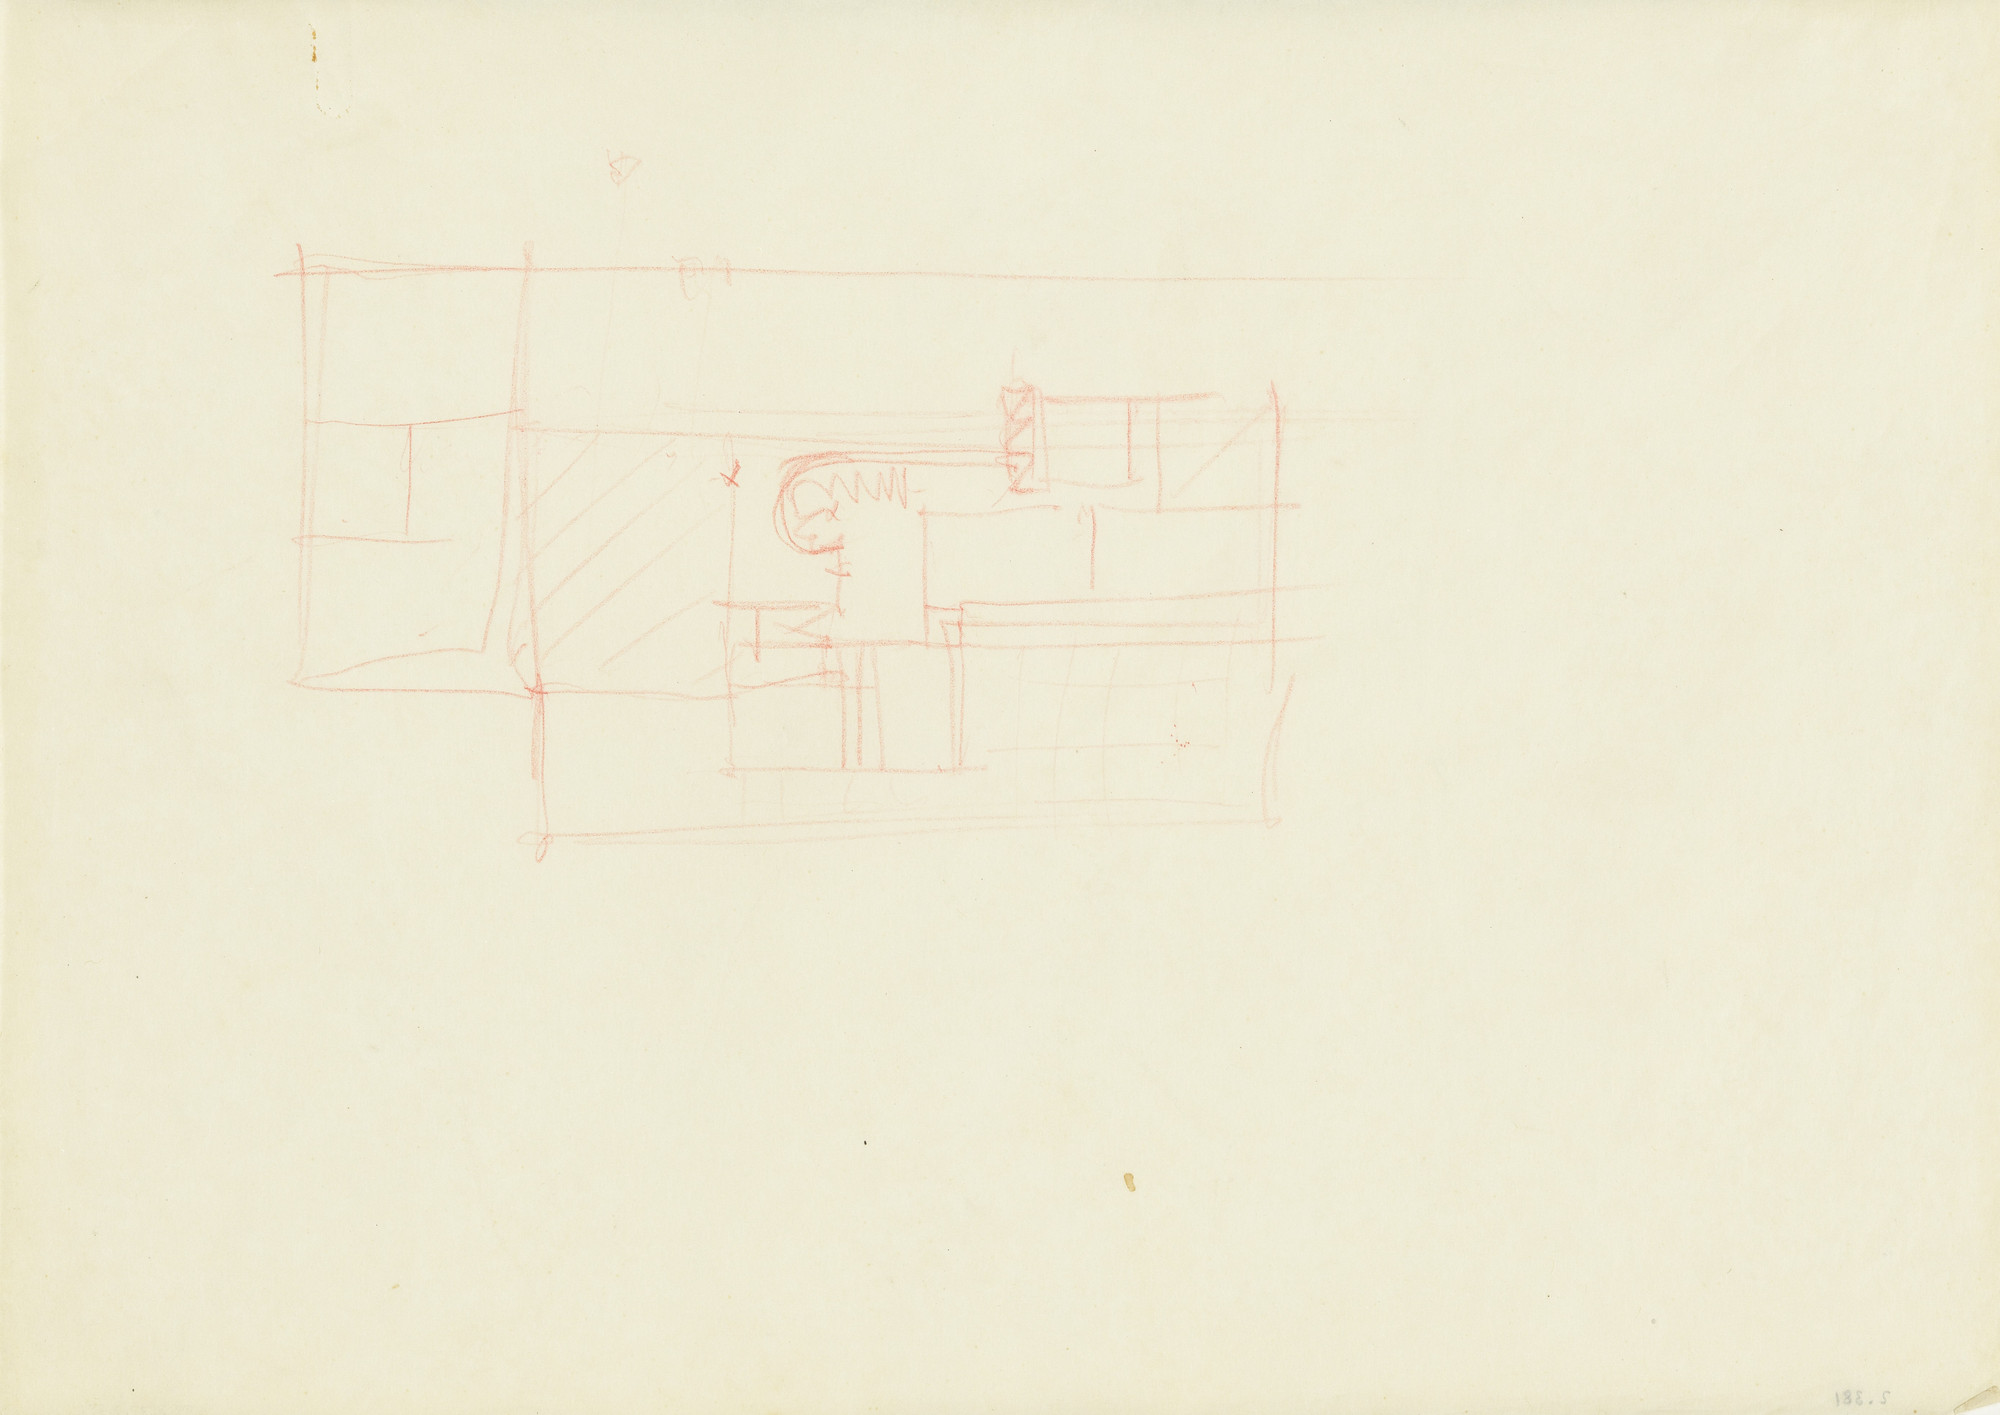 Ludwig Mies van der Rohe. Tugendhat House, Brno, Czech Republic, Upper-floor plan, Sketch. 1928-1930